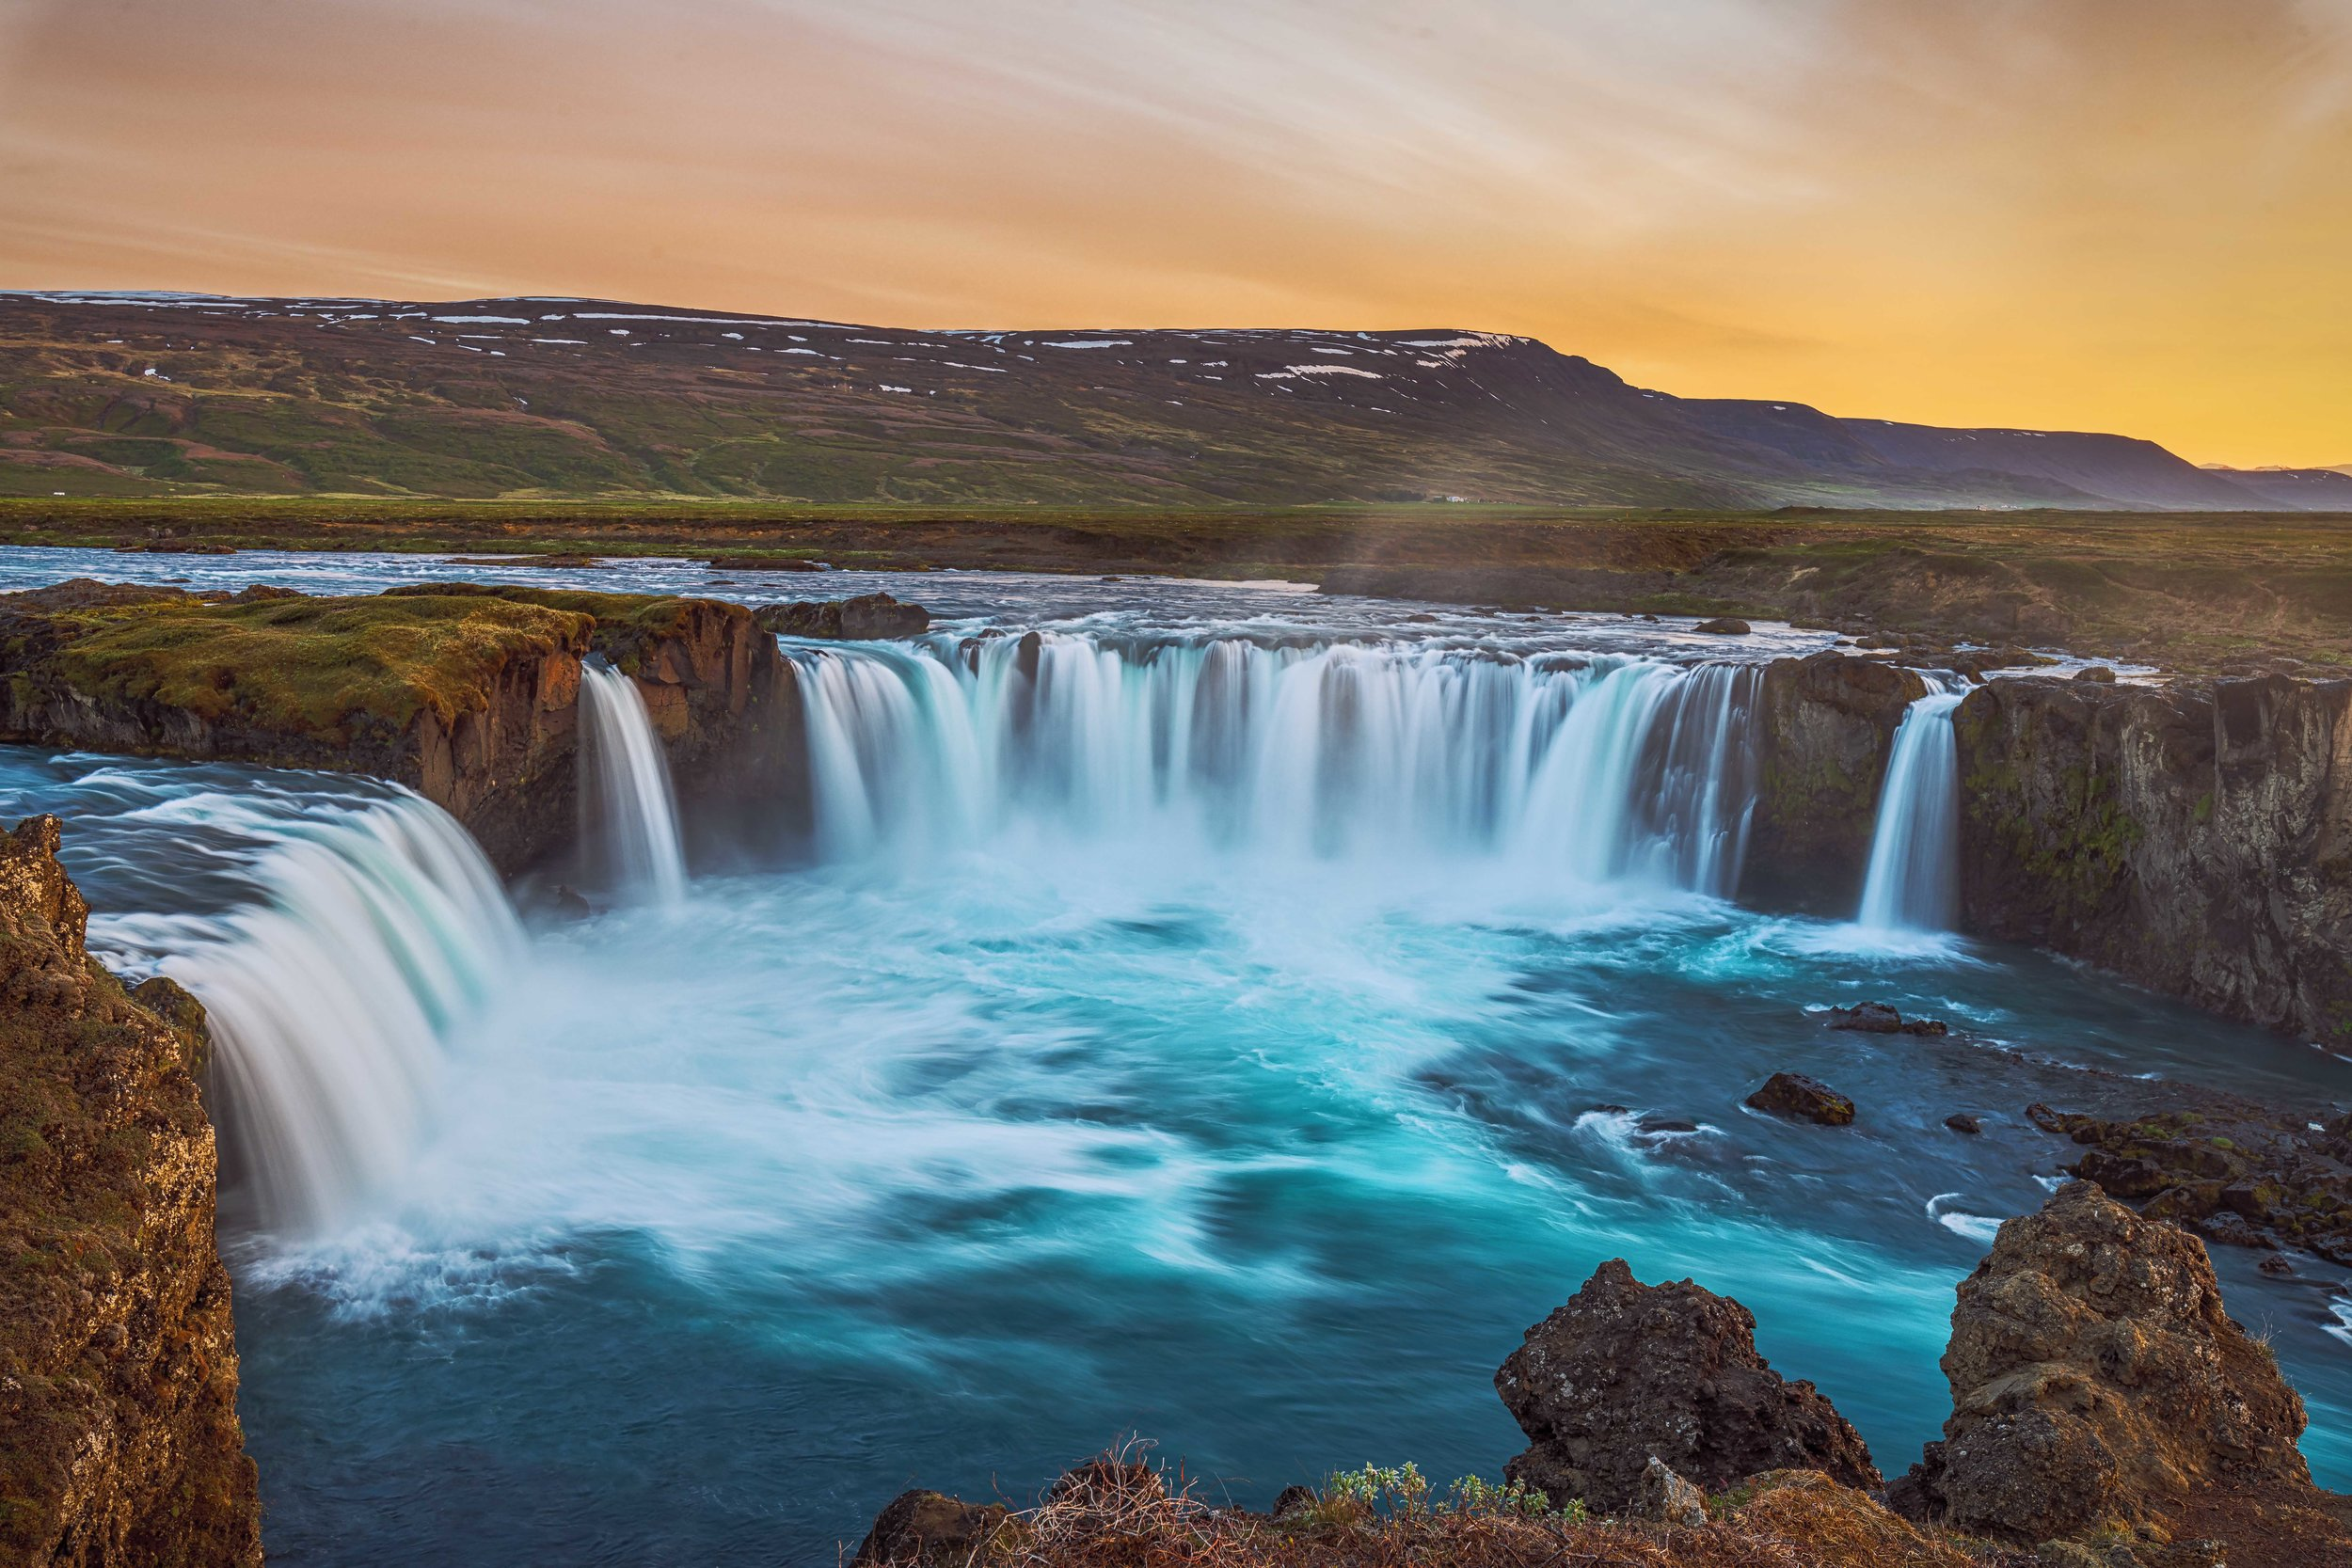 A colorful evening at Godafoss